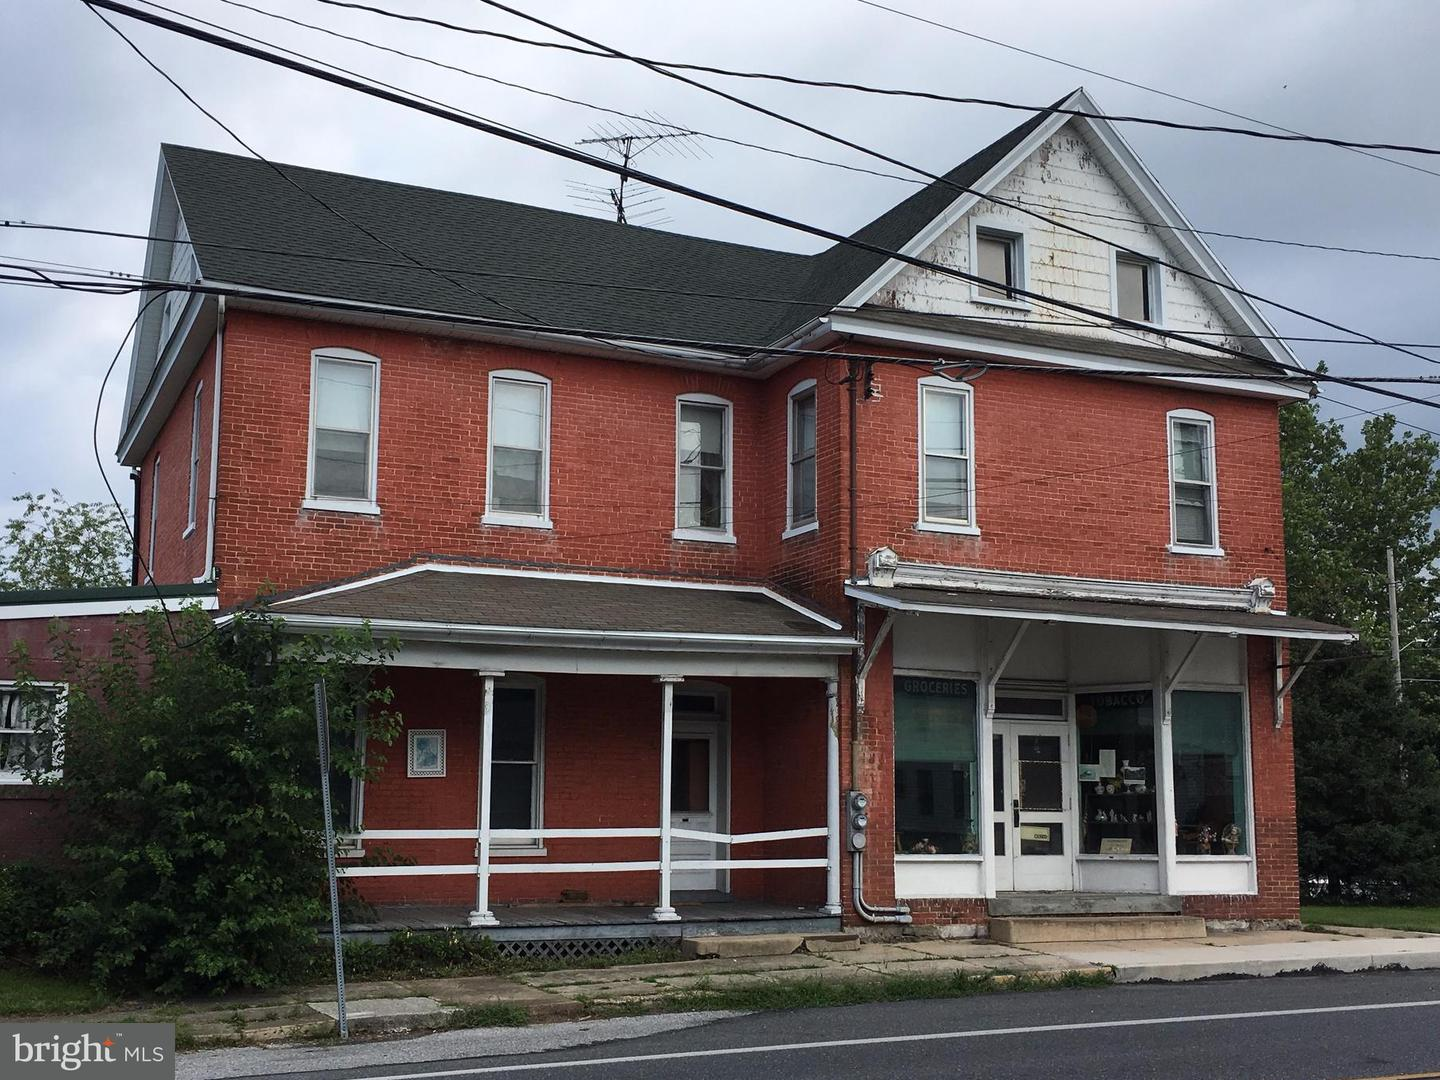 Commercial for Sale at 6 Main St S Mont Alto, Pennsylvania 17237 United States